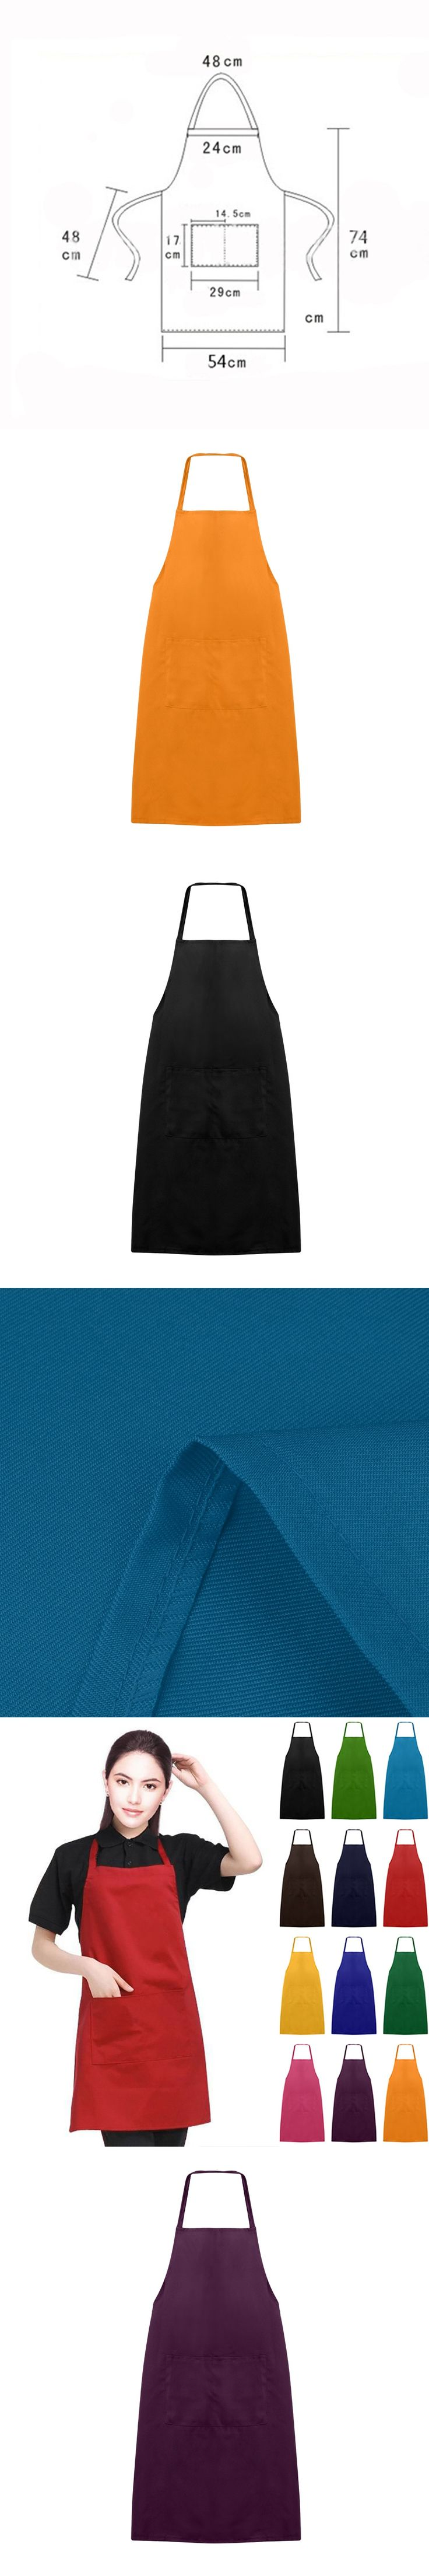 New Plain Unisex Simple Antifouling Apron Cooking Restaurant Catering Work Apron Tabard with Twin Double Pocket for kitchen